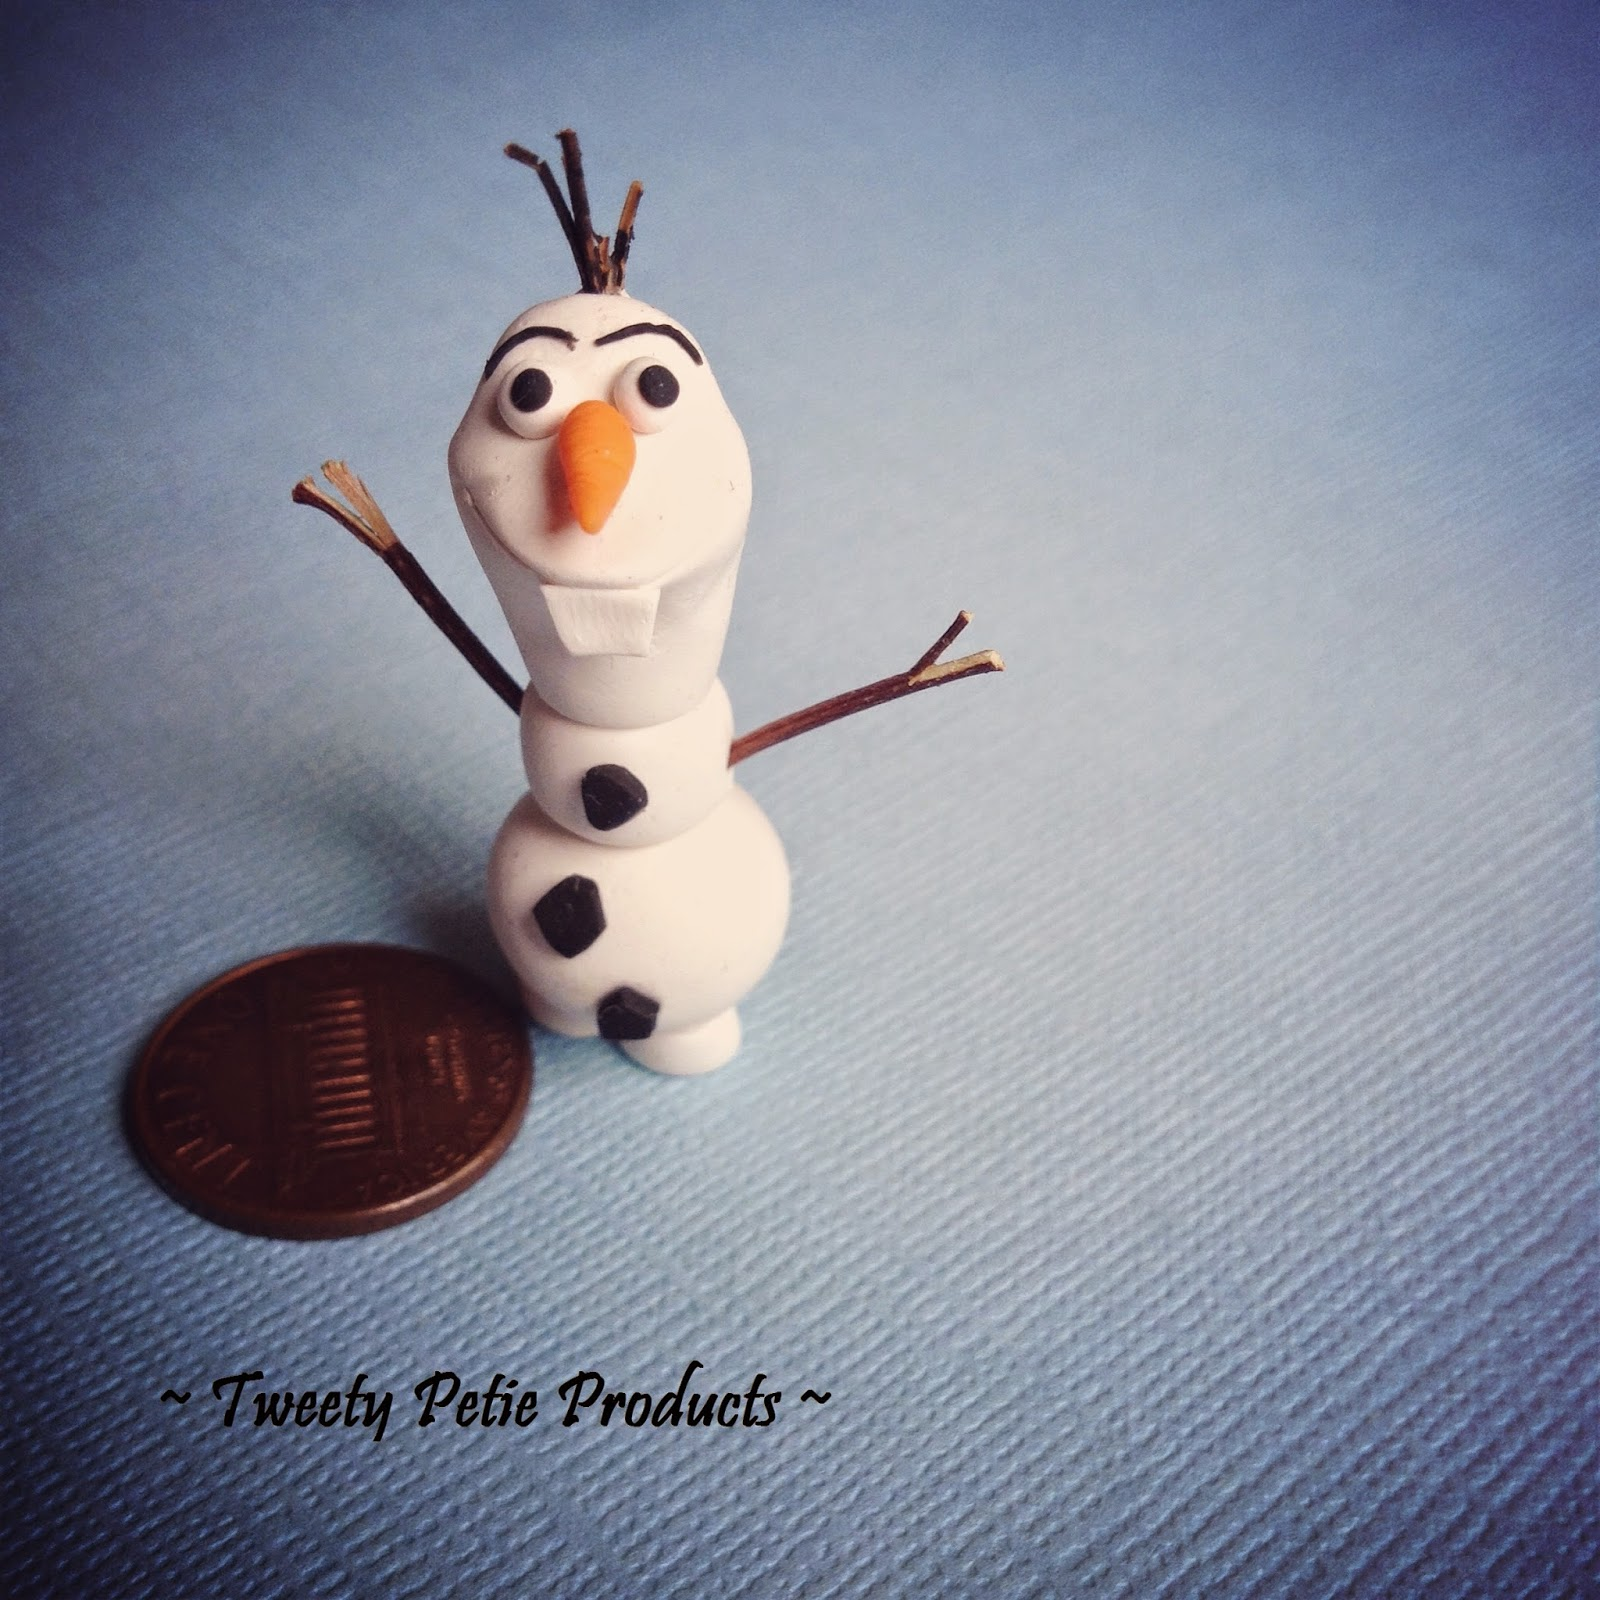 Tweety Petie Products: December 2014